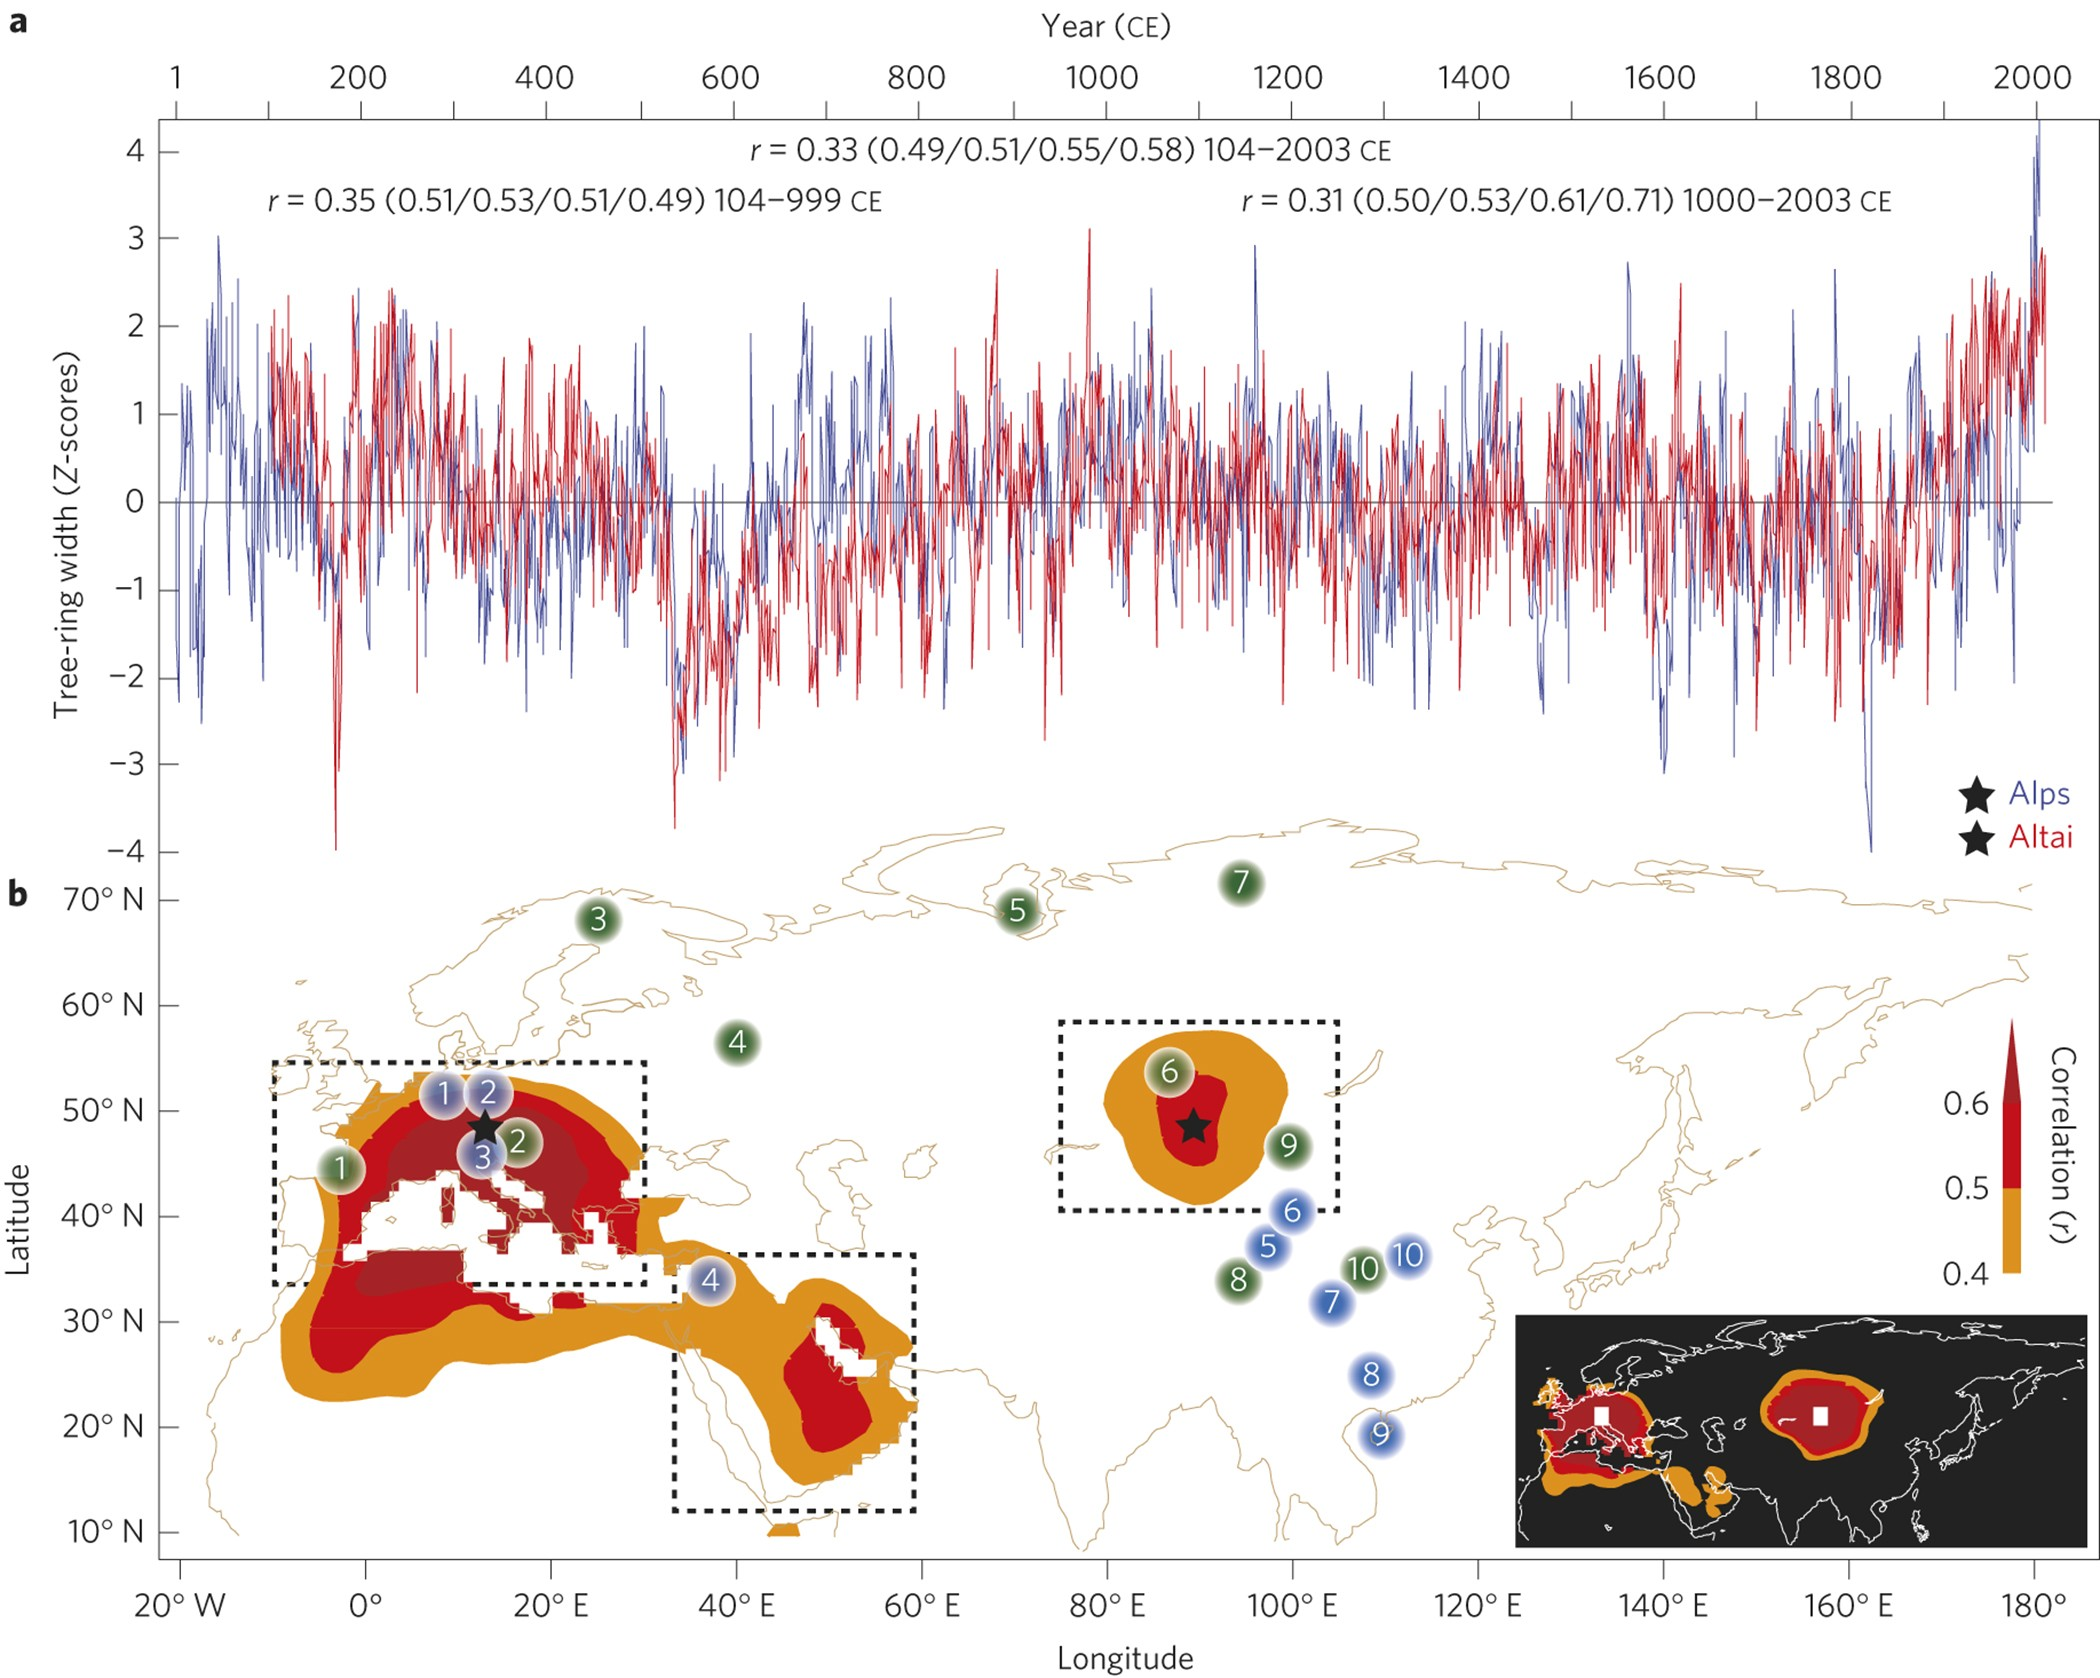 Cooling and societal change during the Late Antique Little Ice Age fro